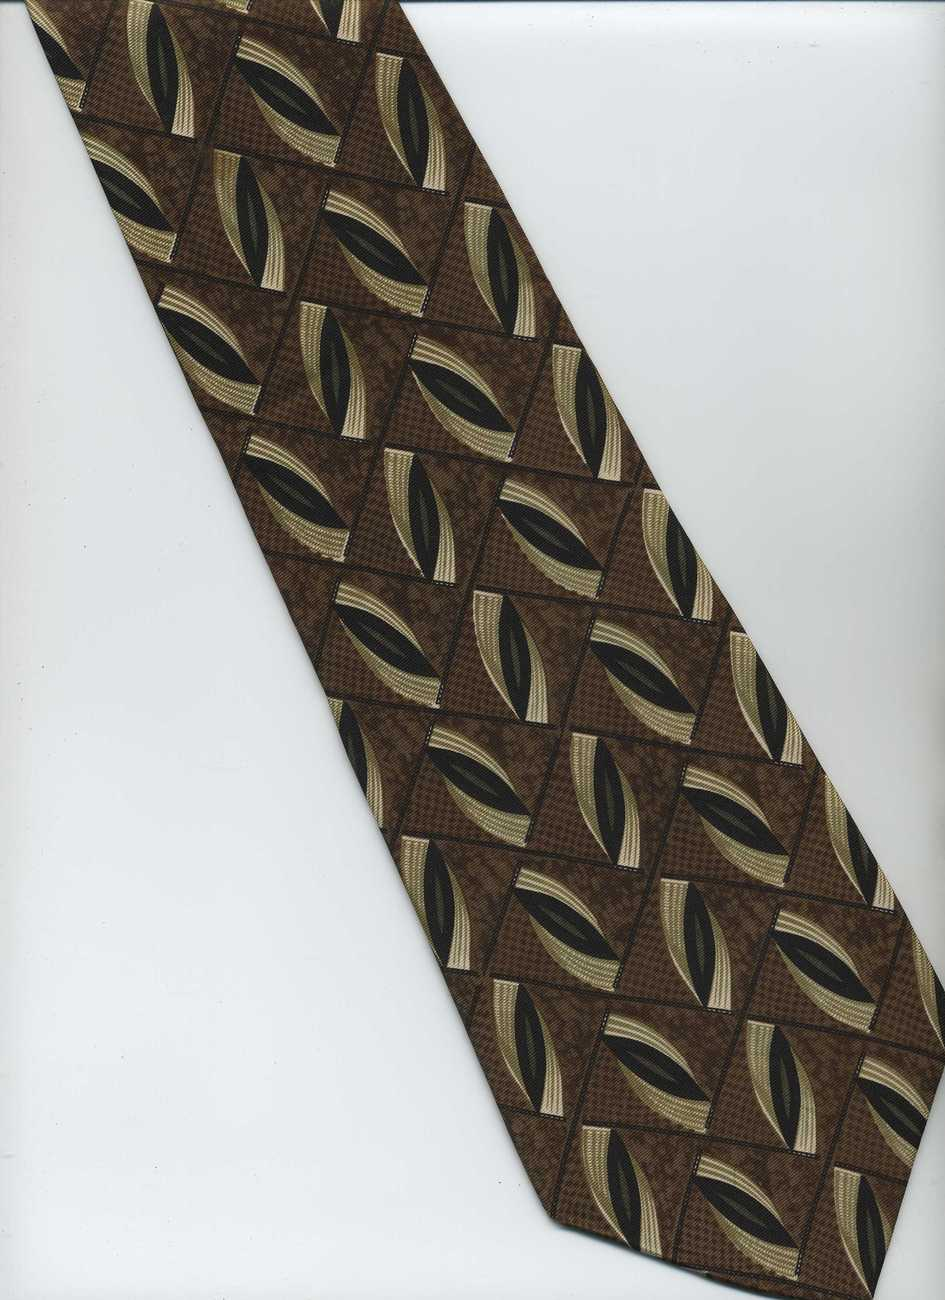 Albert Nipon Tie - Brown, Black, Tan - Check Pattern, Silk Tie